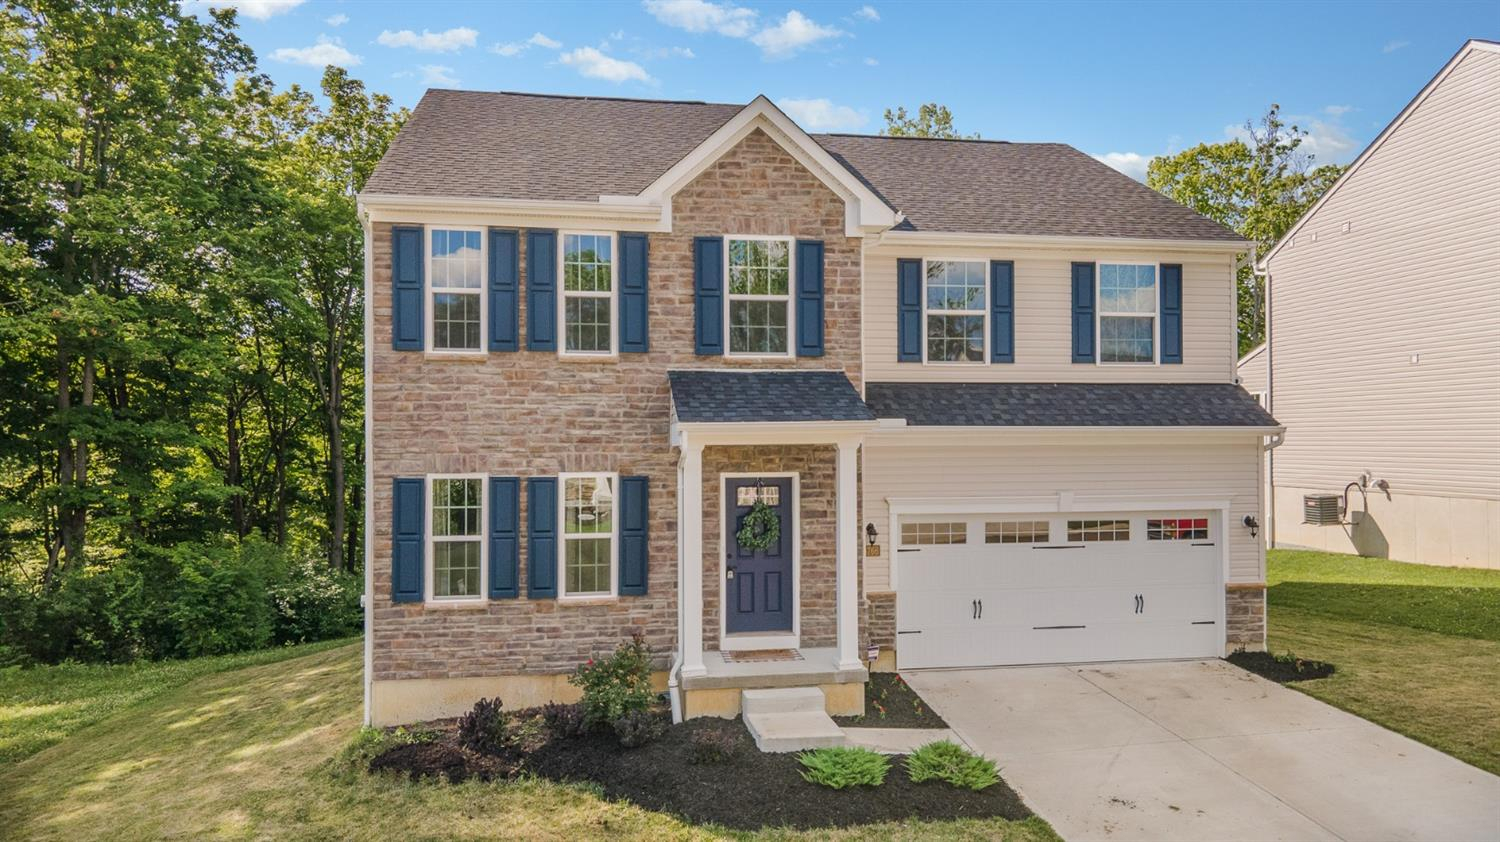 6766 Forest Ridge Dr Colerain Twp.West, OH